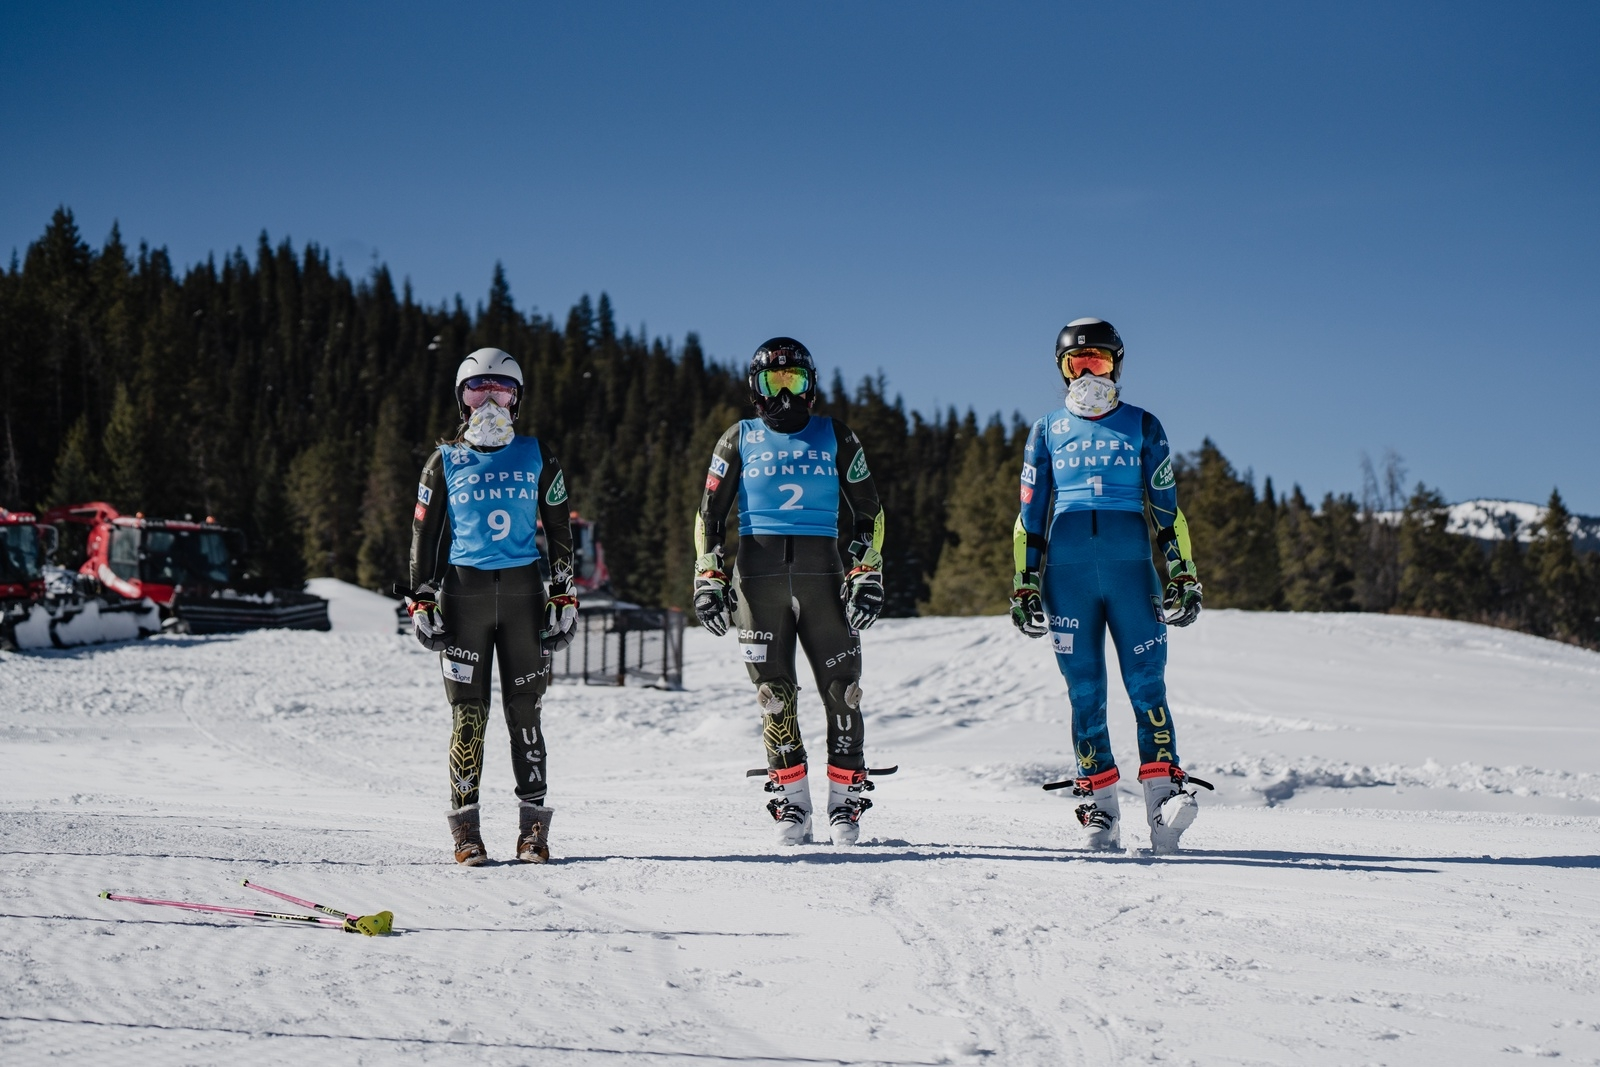 U.S. Alpine skiers physically distance at the U.S. Alpine Ski Championships at Copper Mountain Resort earlier this week. The event was a replacement for a spring 2020 national championships that was canceled due to the novel coronavirus.   Photo by Max Hall / U.S. Ski & Snowboard